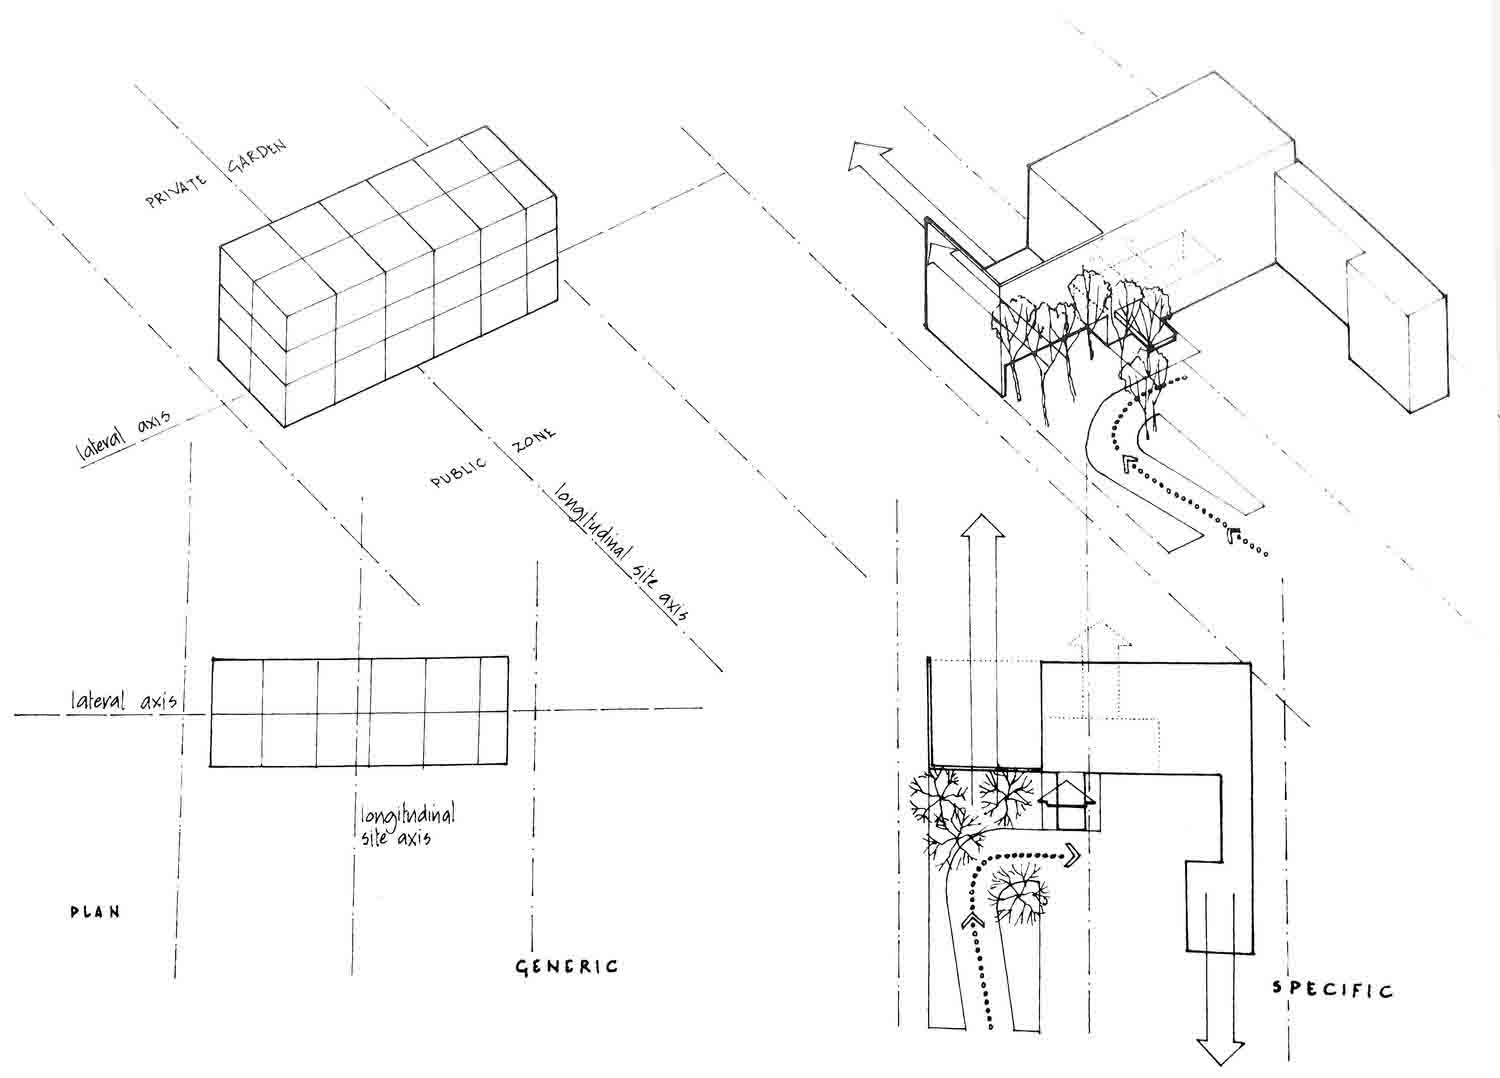 Excerpt taken from  Le Corbusier's, an analysis of form